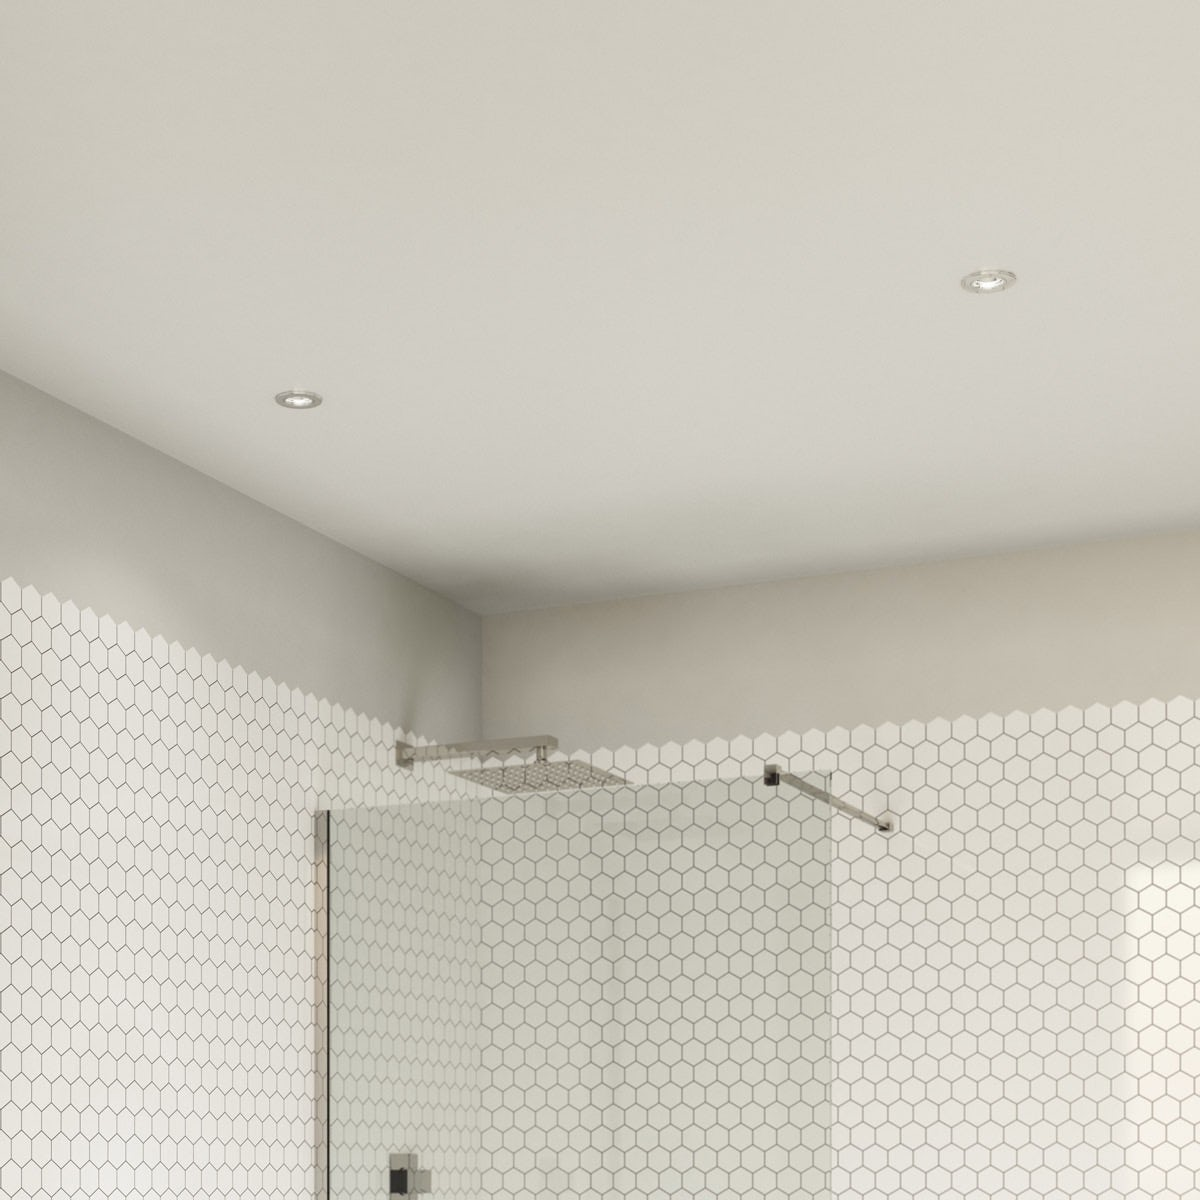 Enclosed bathroom ceiling lights